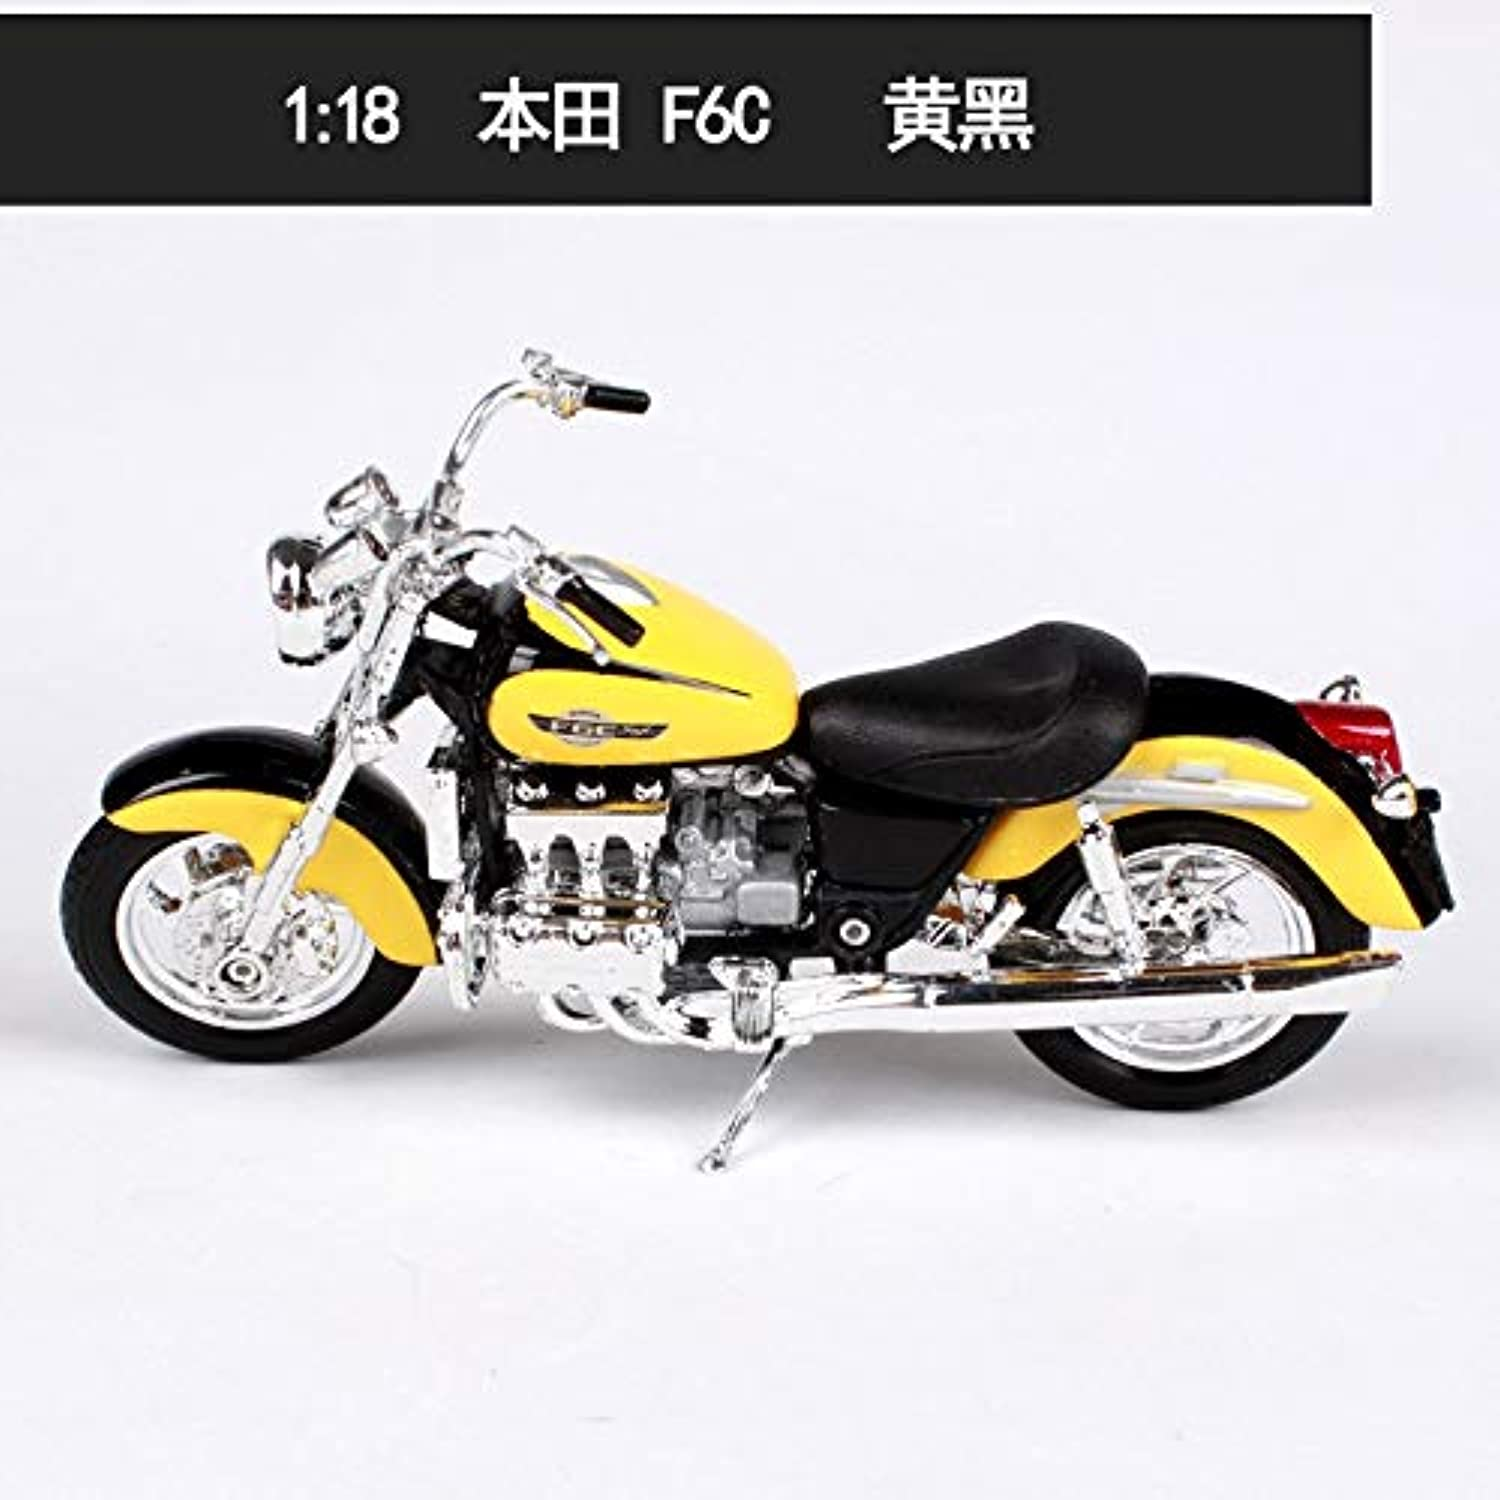 Generic Diecast Alloy Motorcycle Scale Motor Scoote Car Models Motorbike Vehicles mkd3 Toys 1 18 Honda CBR600RR F6C317 Yellow